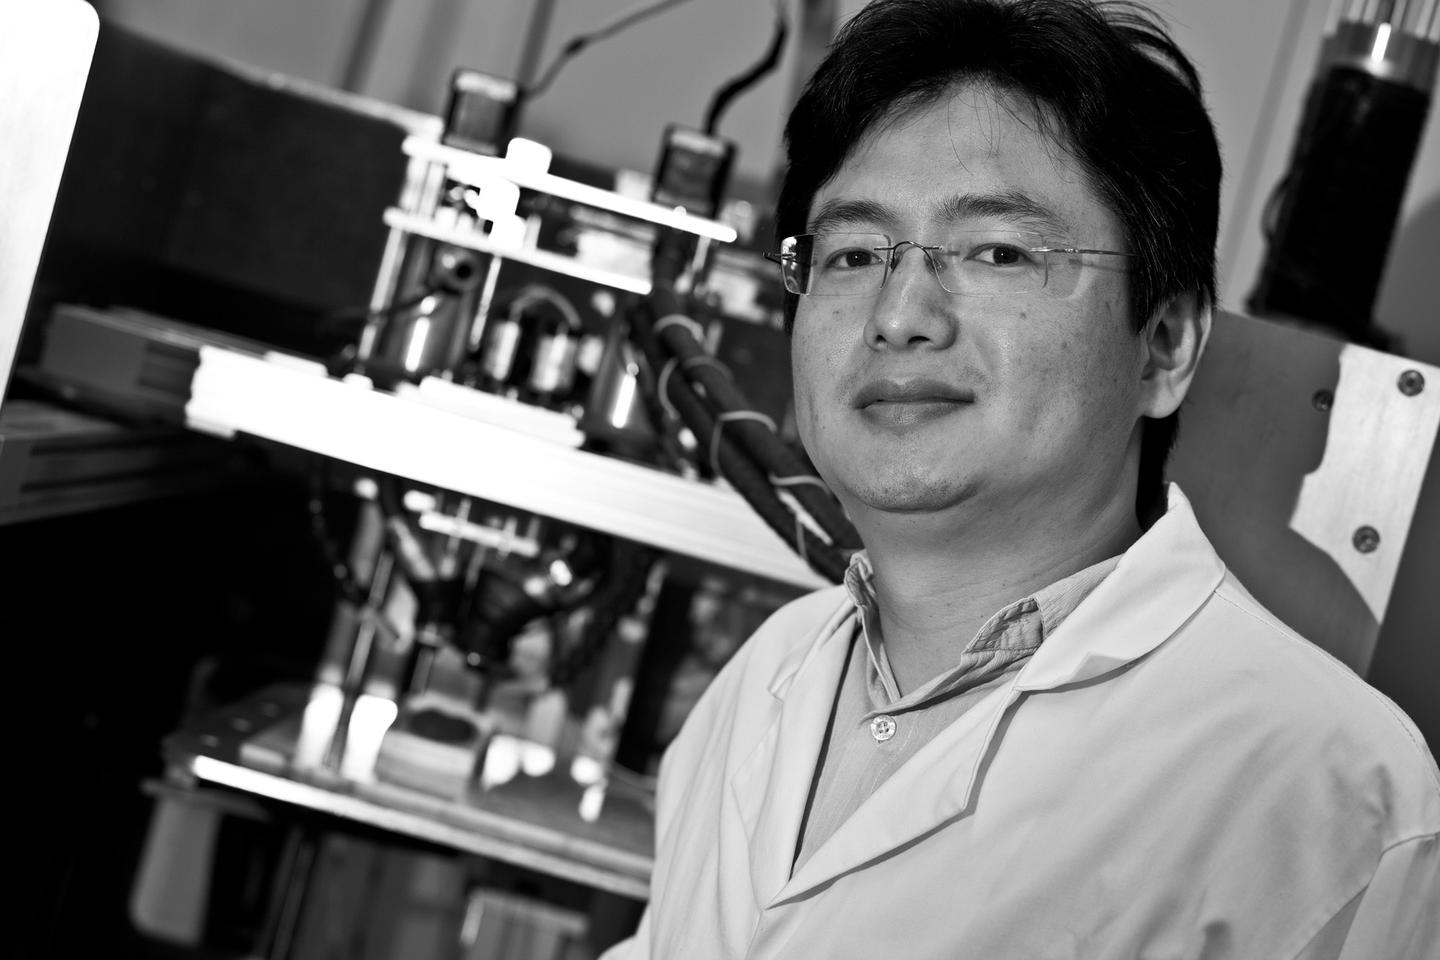 The University of Exeter's Dr. Liang Hao, lead researcher on the 3D chocolate printer project (Photo: EPSRC)